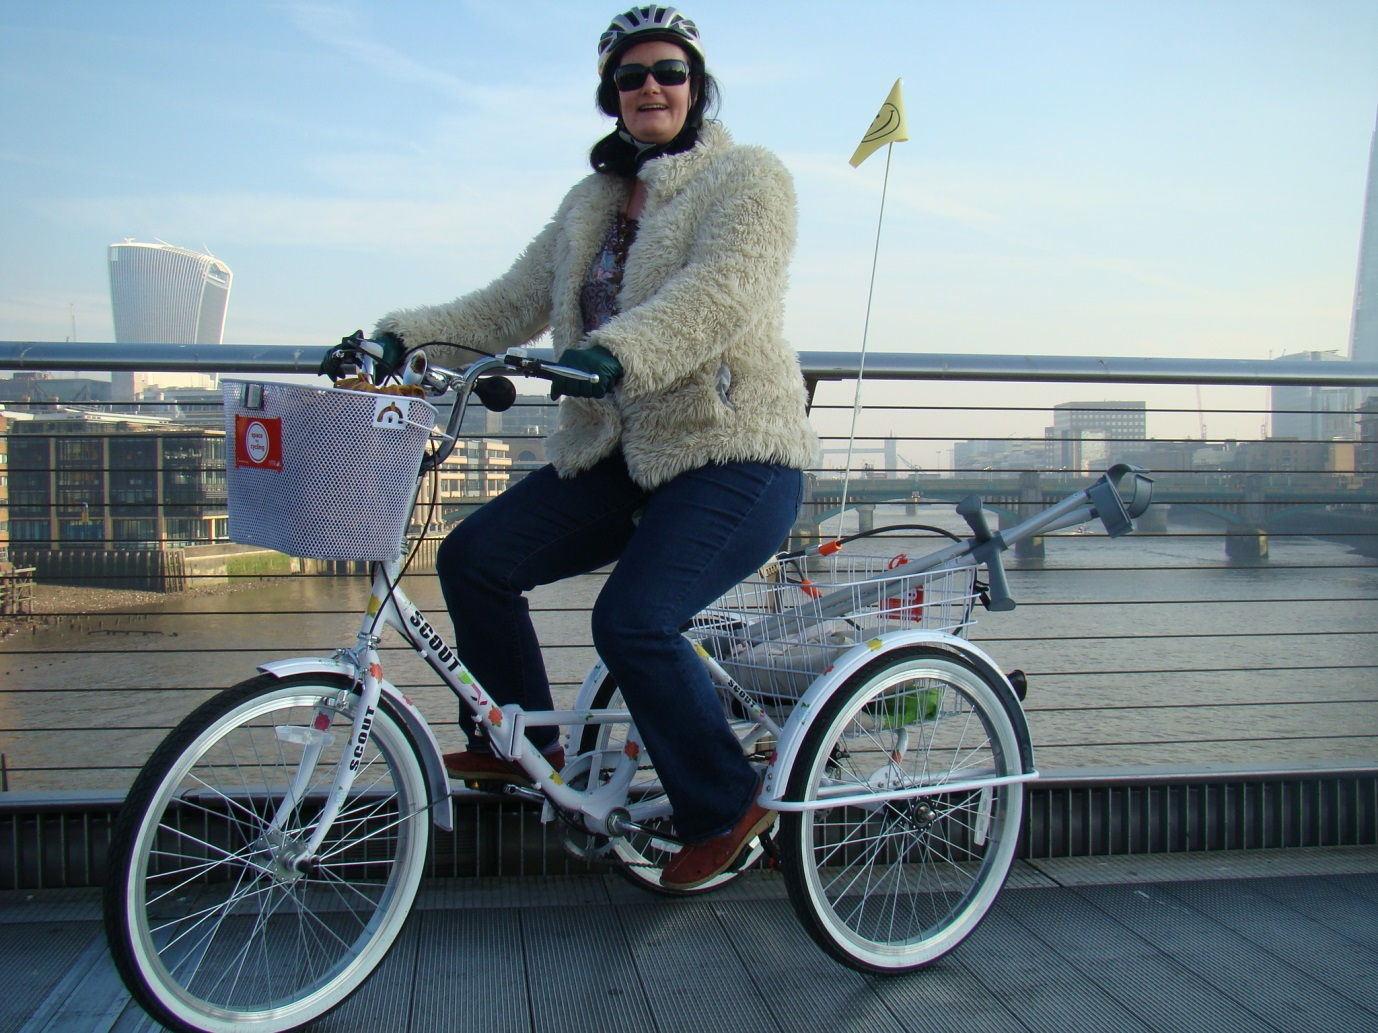 Green Commute Initiative is an all-inclusive cycle to work scheme with no £1,000 limit, meaning that if you are unable to ride a standard bike due to mobility issues, then you can get a specialised cycle, trike or adapted cycle through GCI.